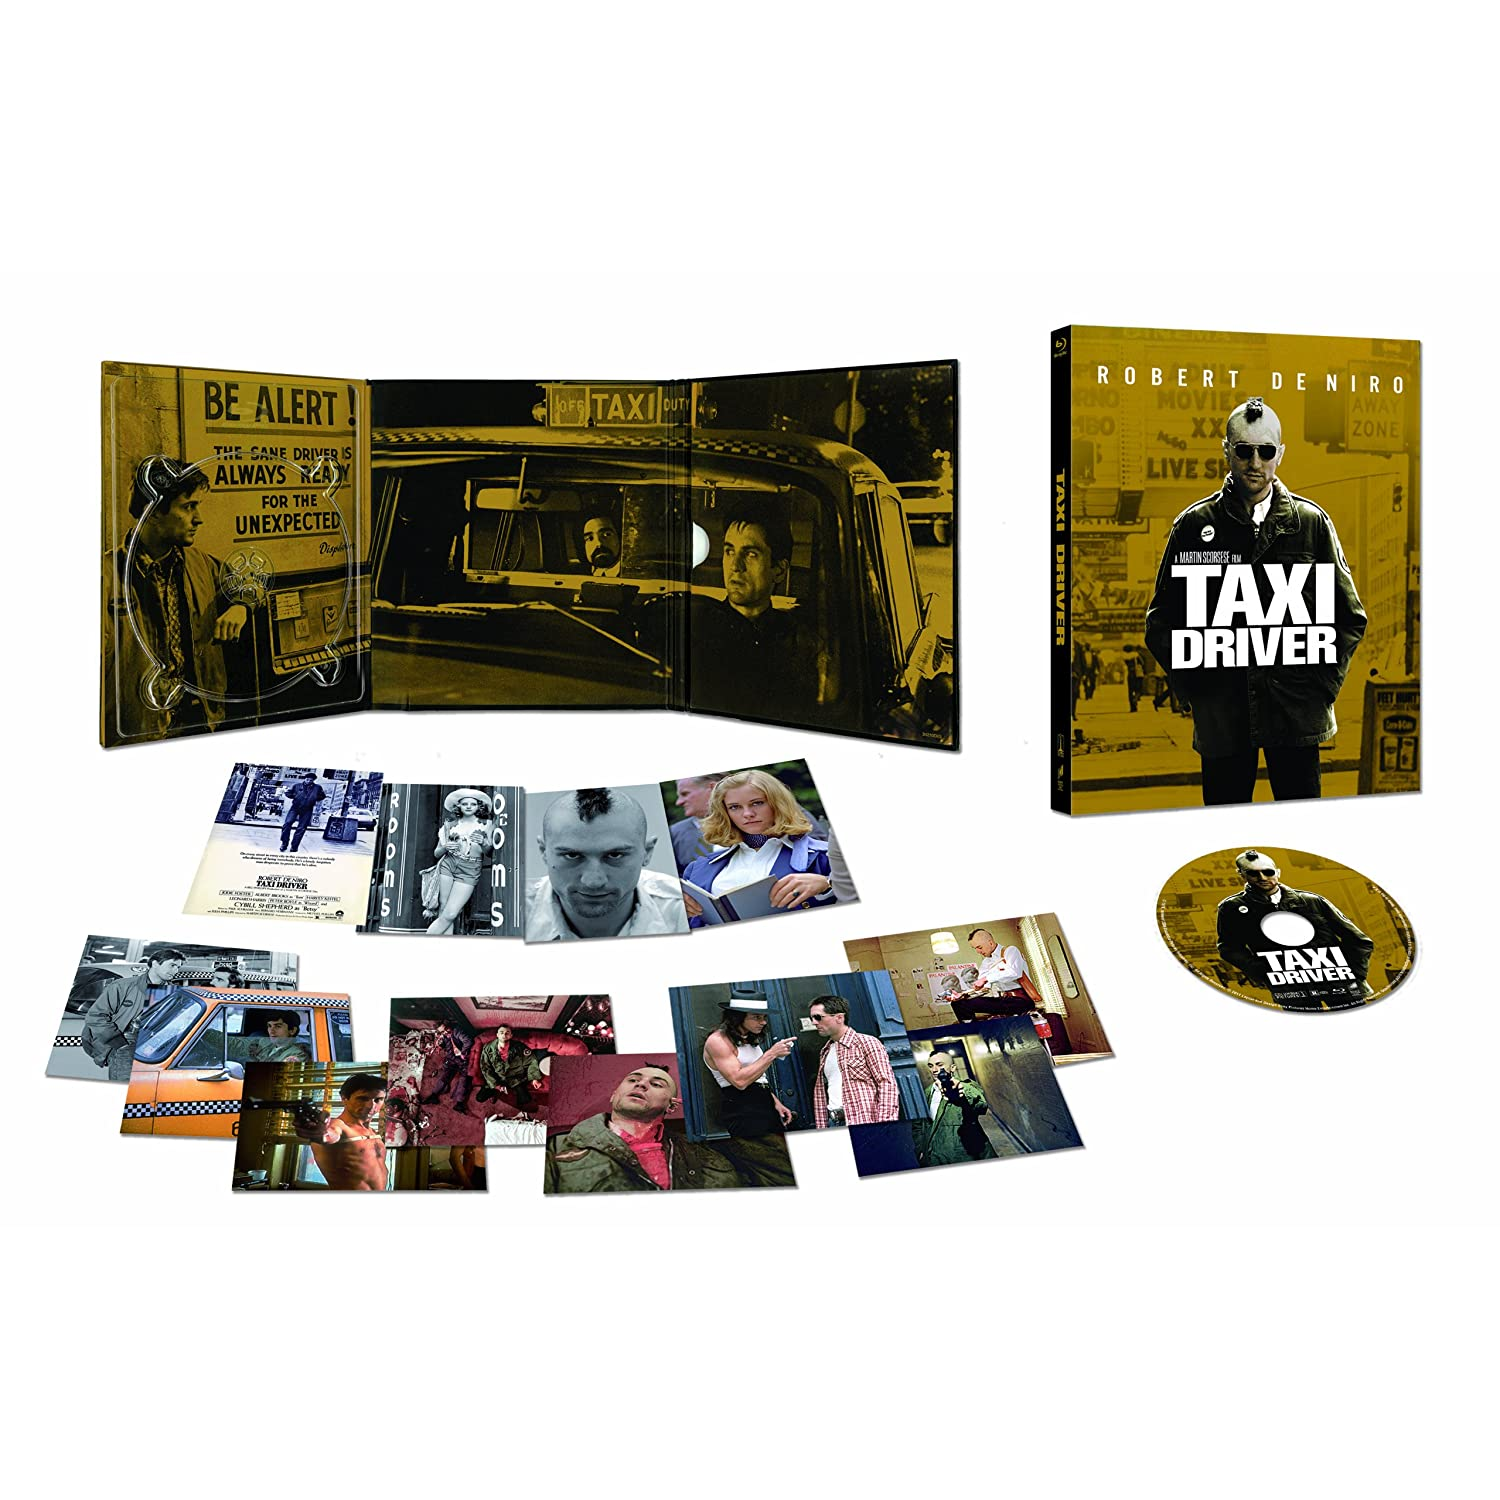 Taxi Driver Collectors Edition